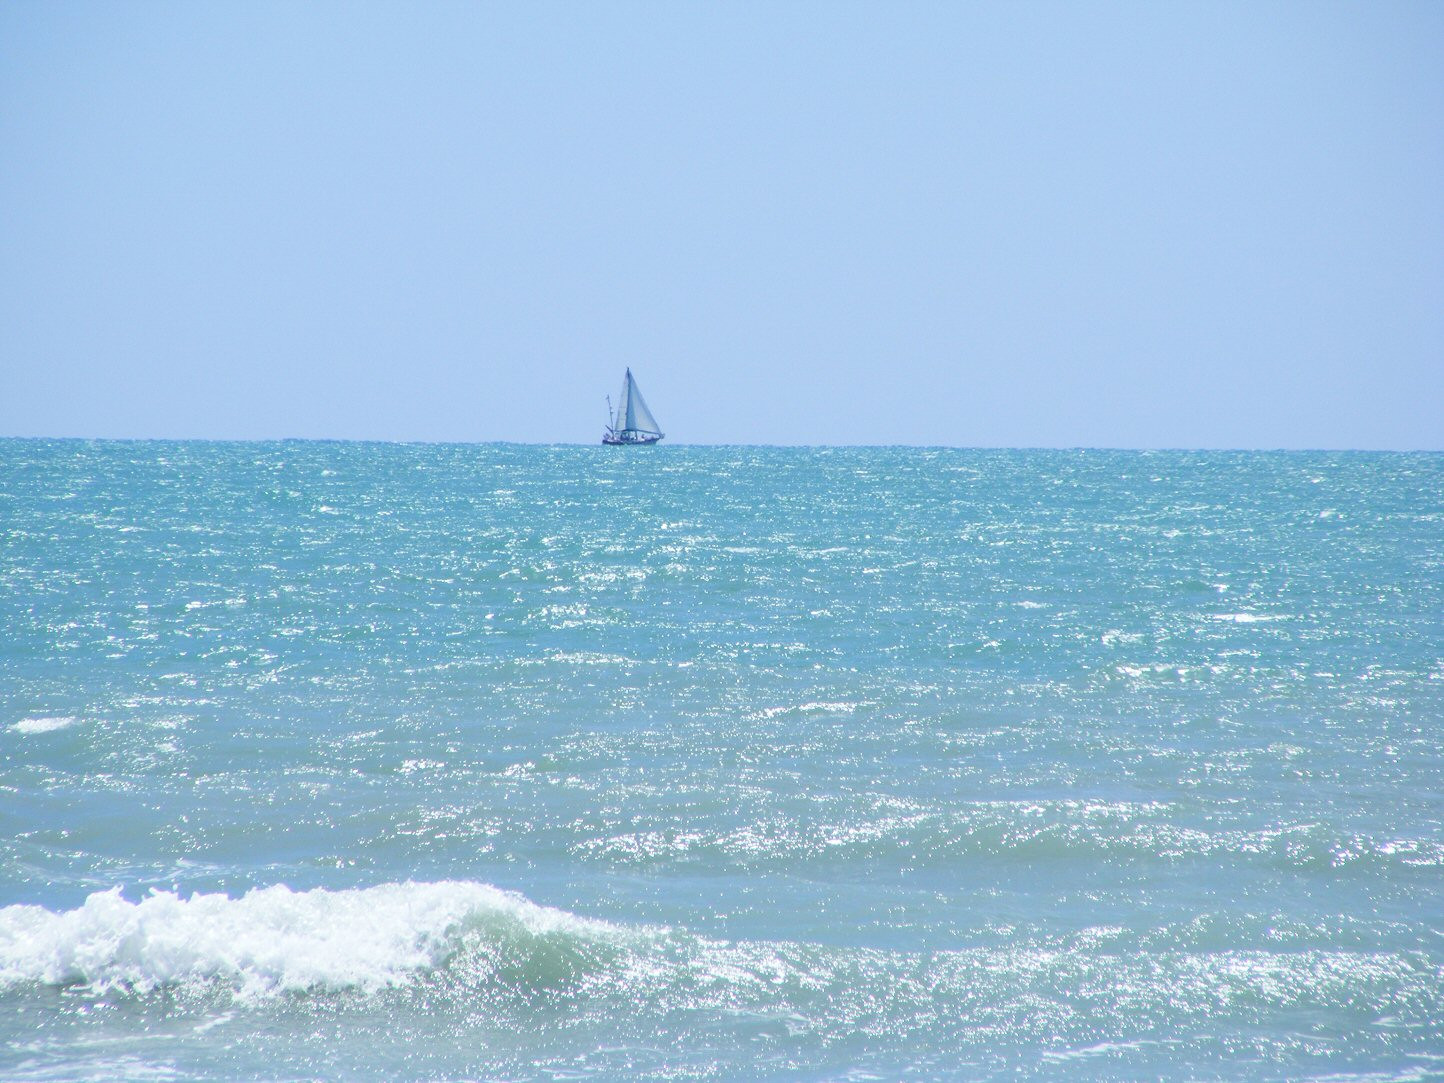 Florida Sailboat in the Distance